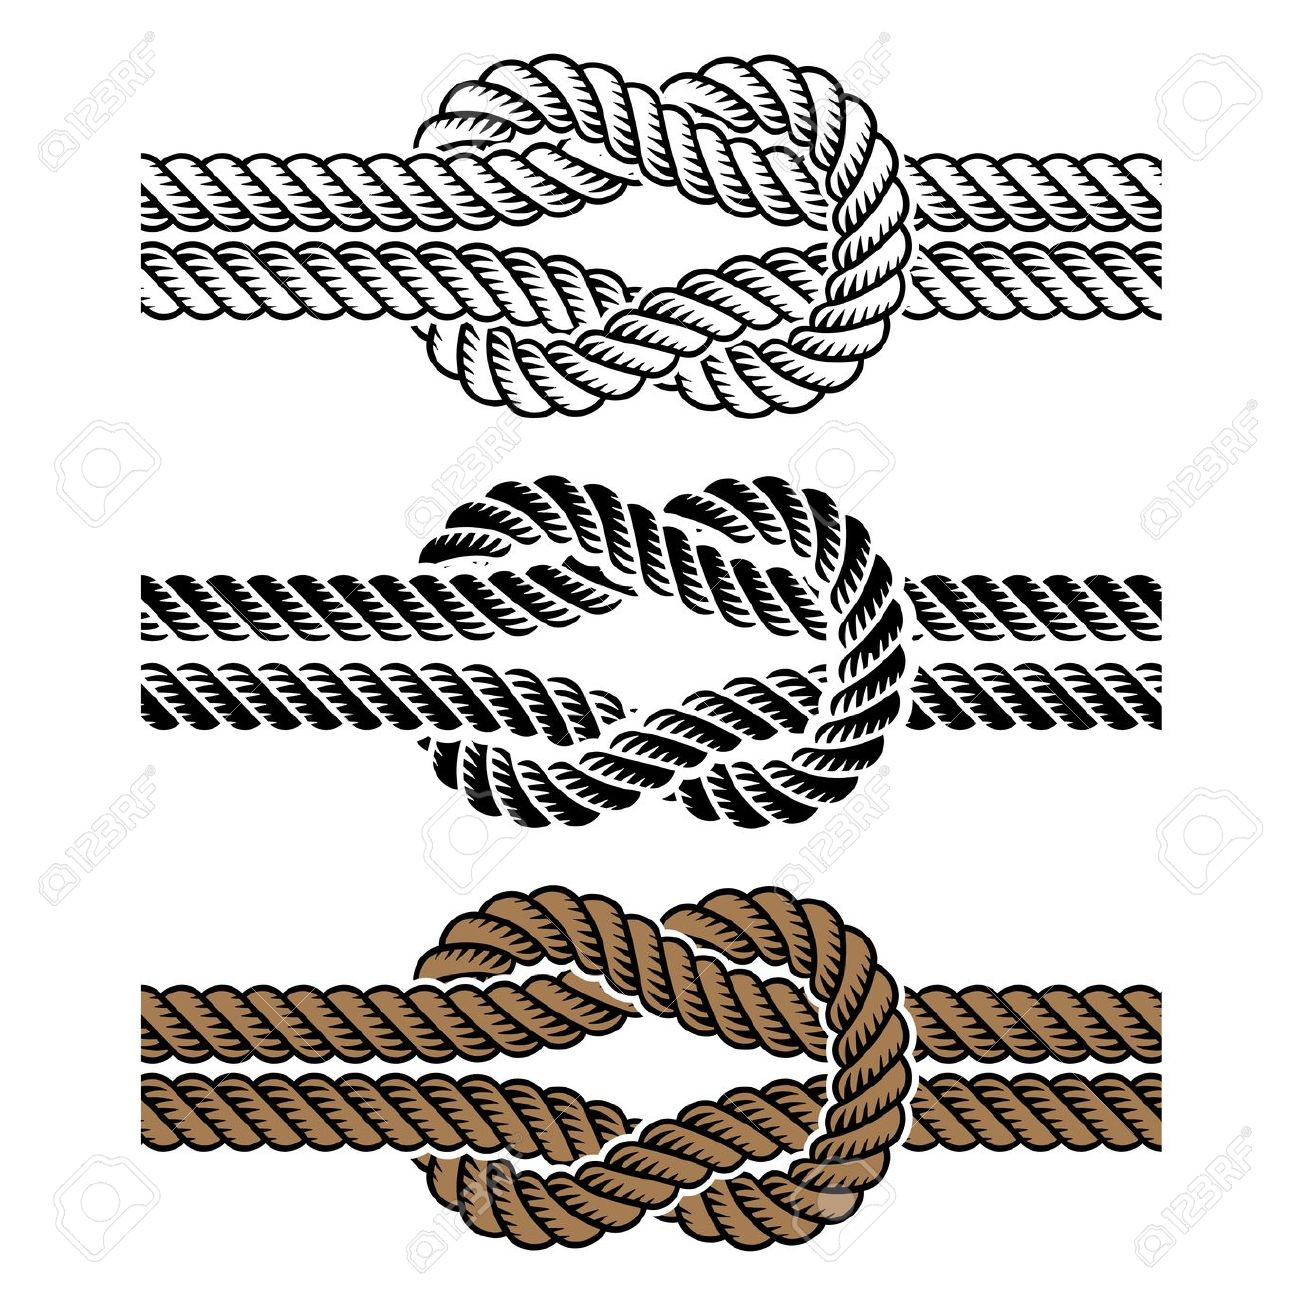 Drawn rope sailor Elements Rope tattoos Design knot